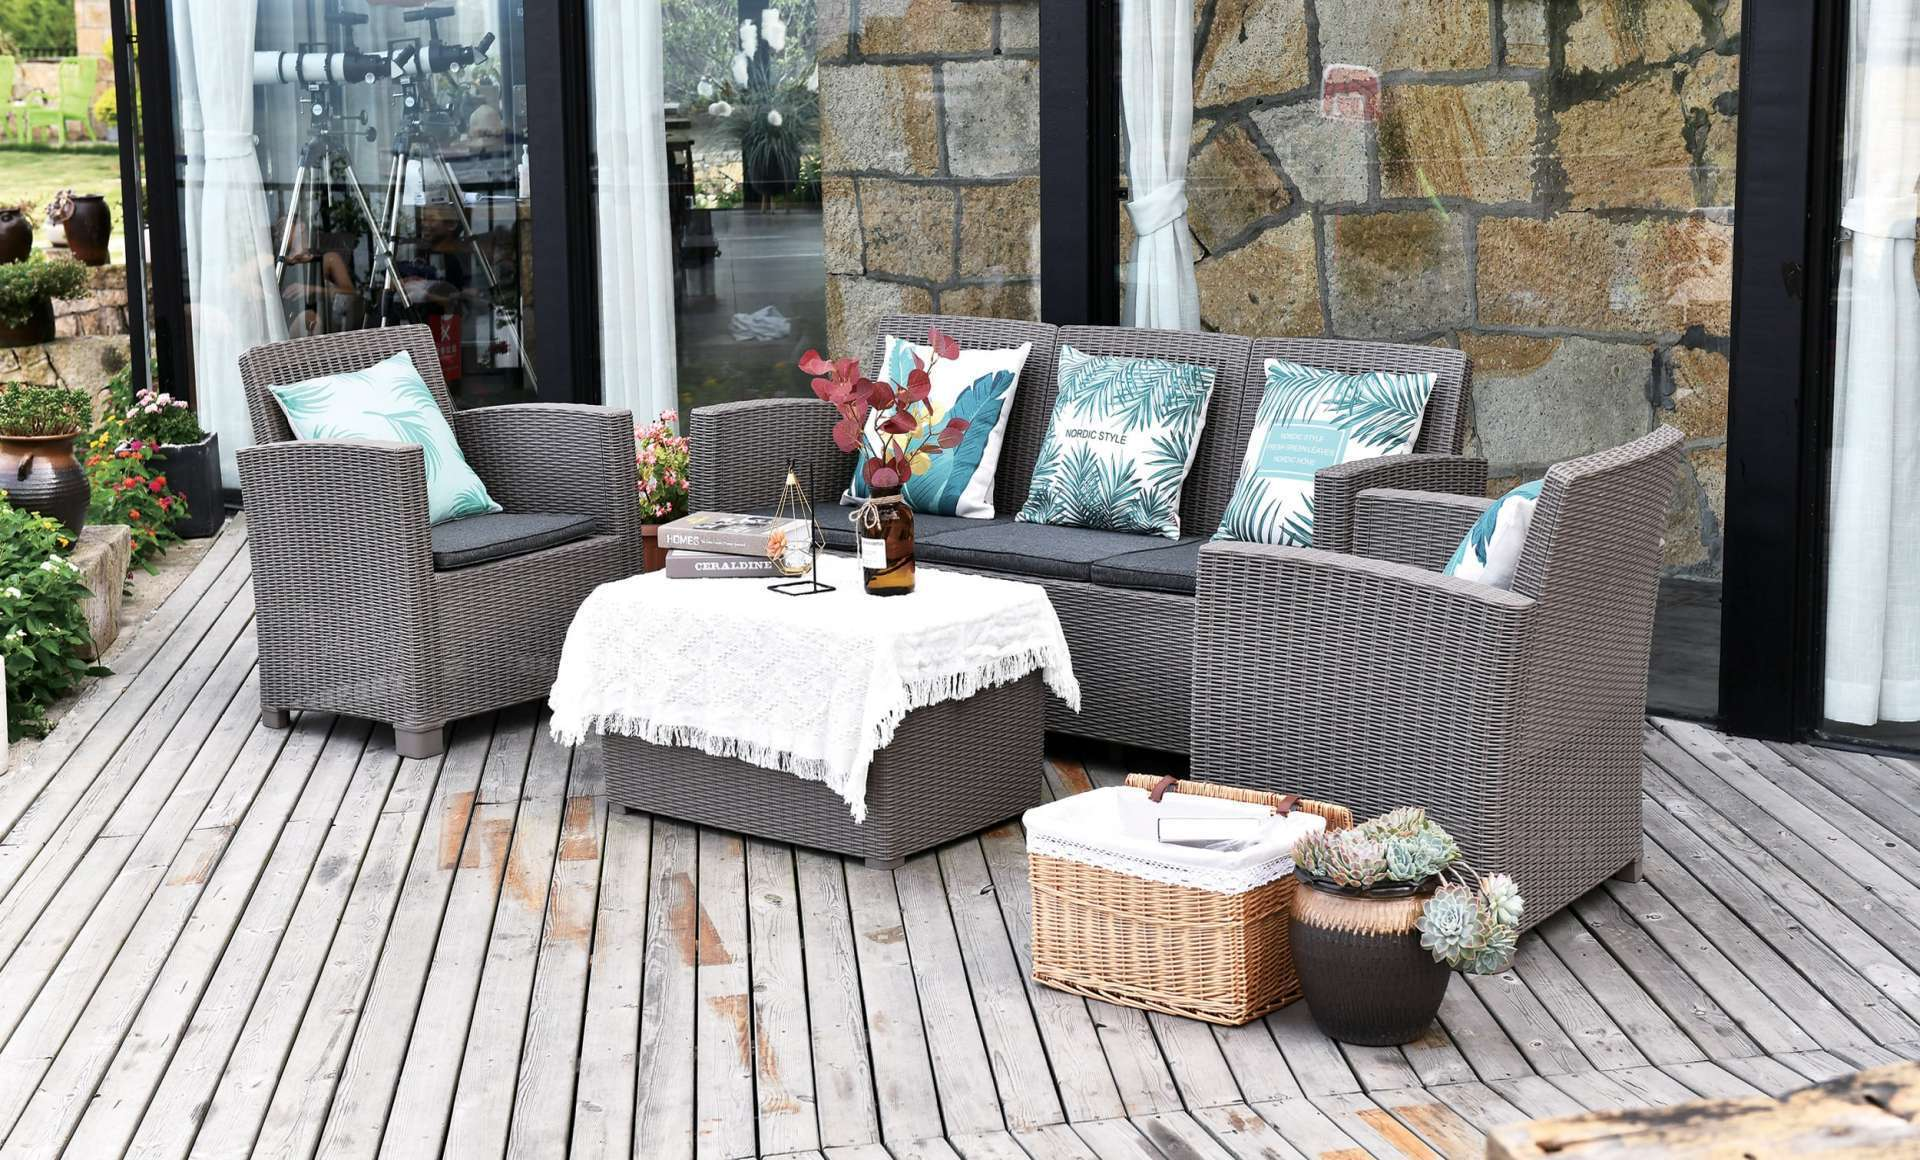 Garden and terrace furniture